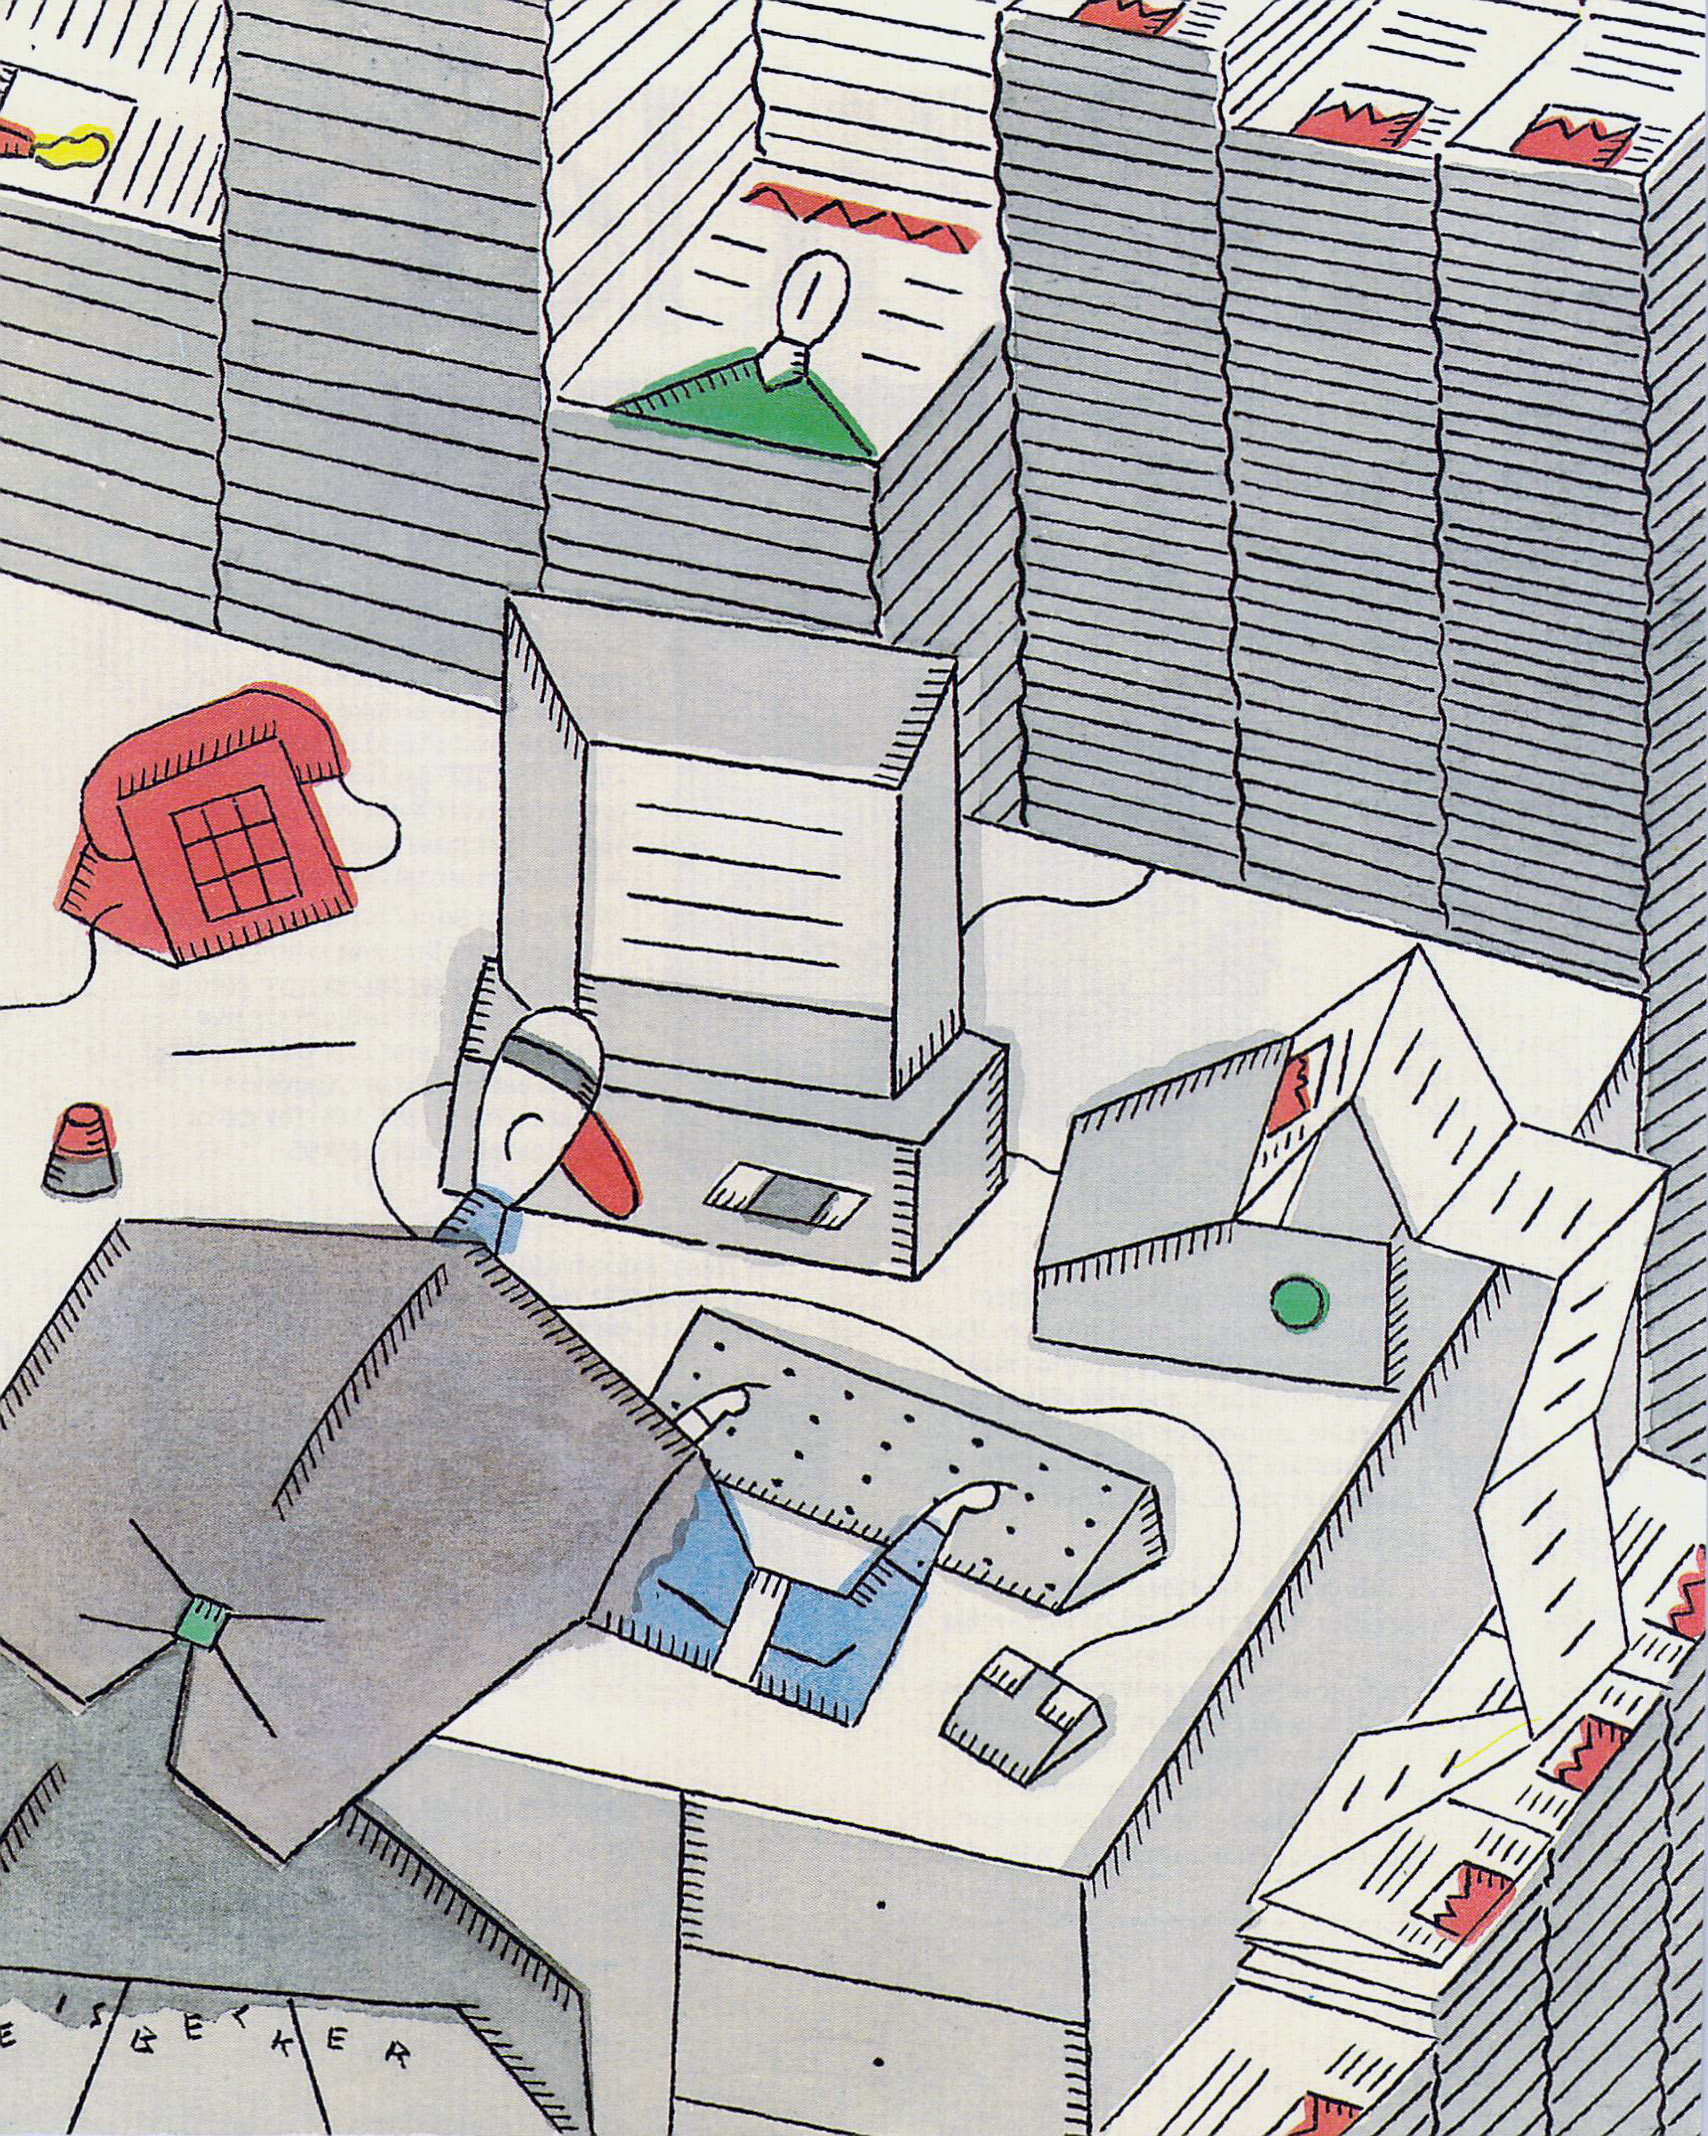 """Phillippe Weisbecker, Illustration from the article """"To Have and Have Not"""" in AmigaWorld, Jan 1988"""